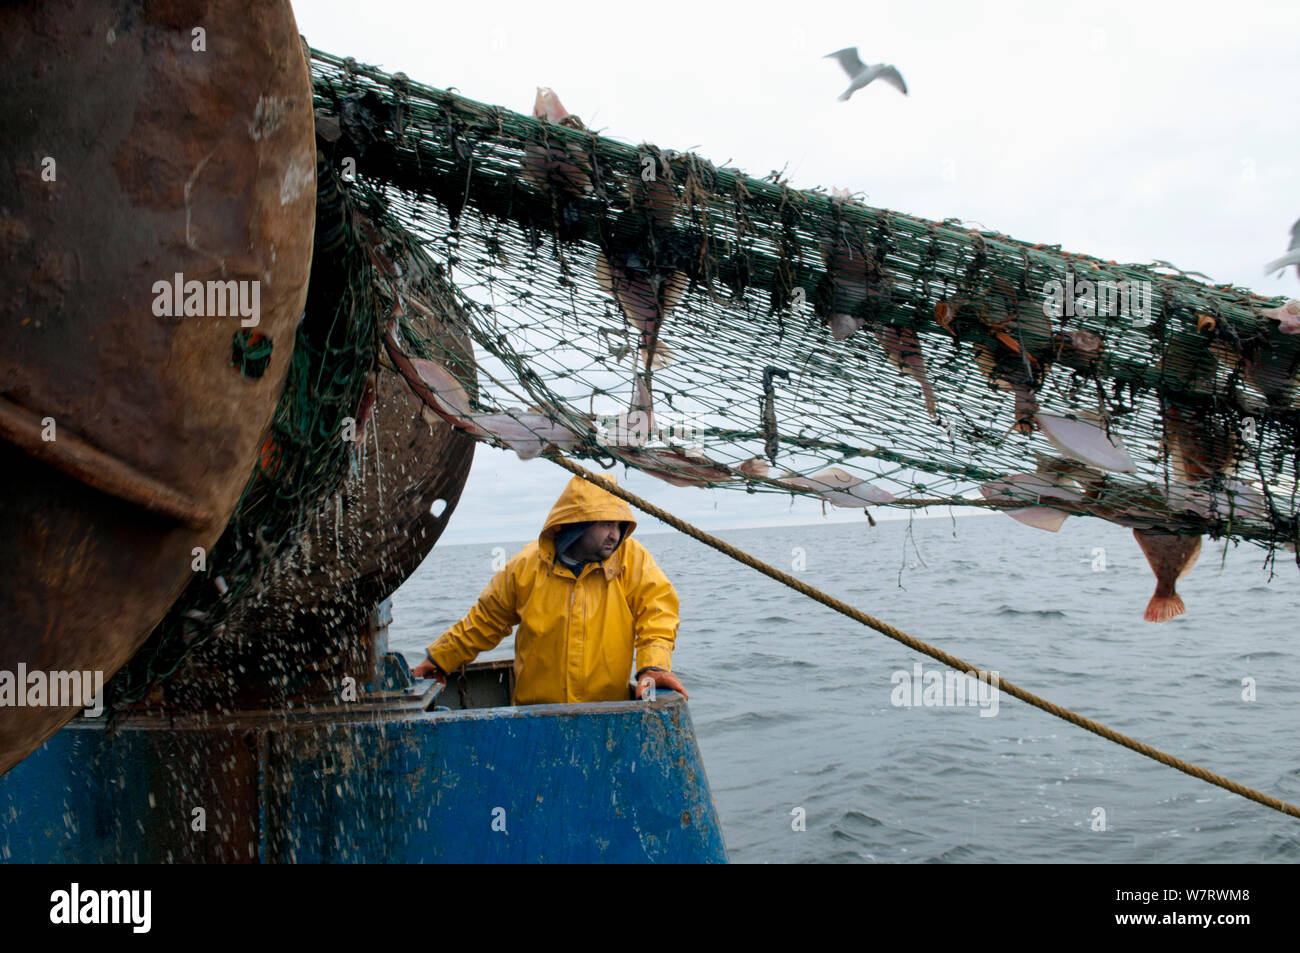 Fisherman hauling back trawler net on fishing trawler. Stellwagen Banks, New England, United States, North Atlantic Ocean Model released. Stock Photo